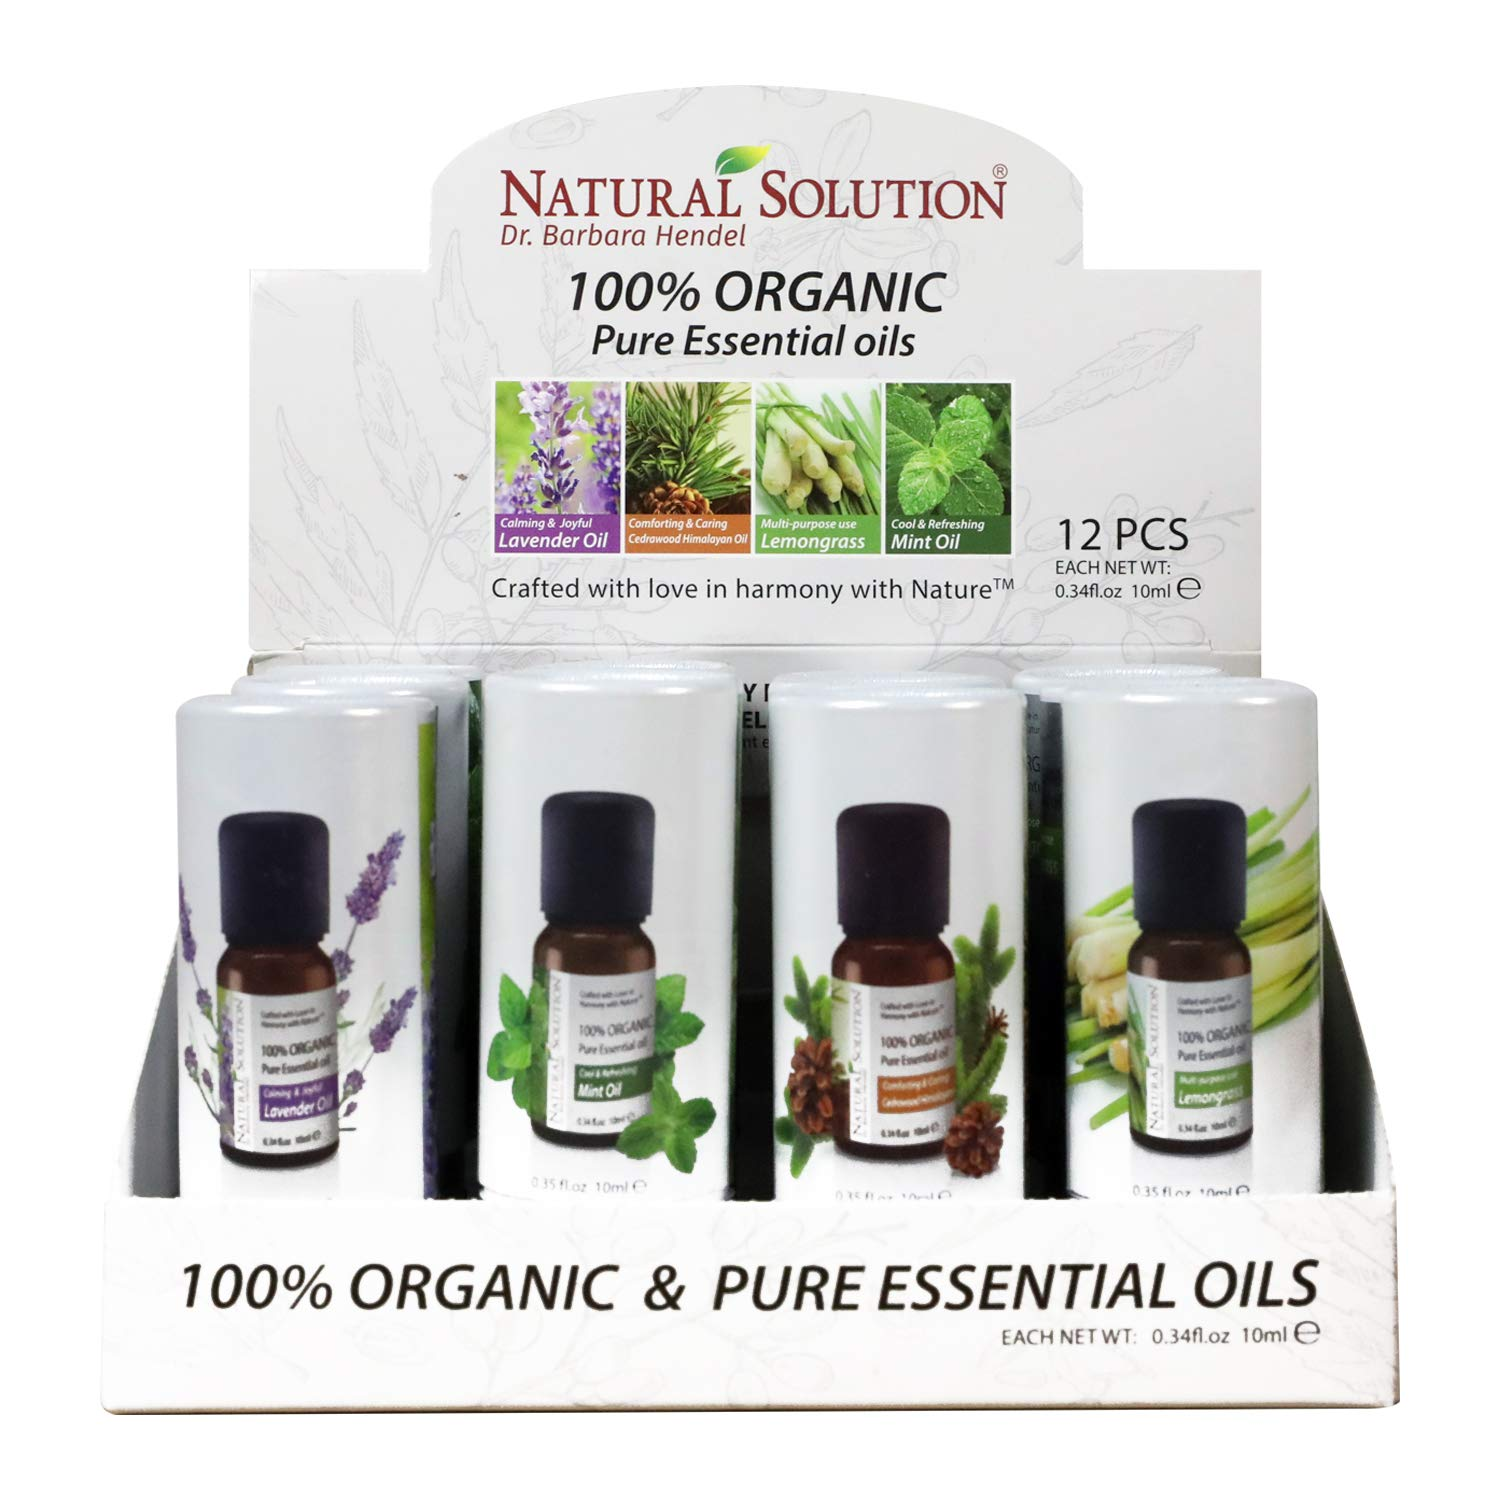 Top 4 Organic Essential Oils Display Set   Lavender Oil, Cedrawood, Mint Oil, Lemongrass   3 Each, 12 in a Case Box